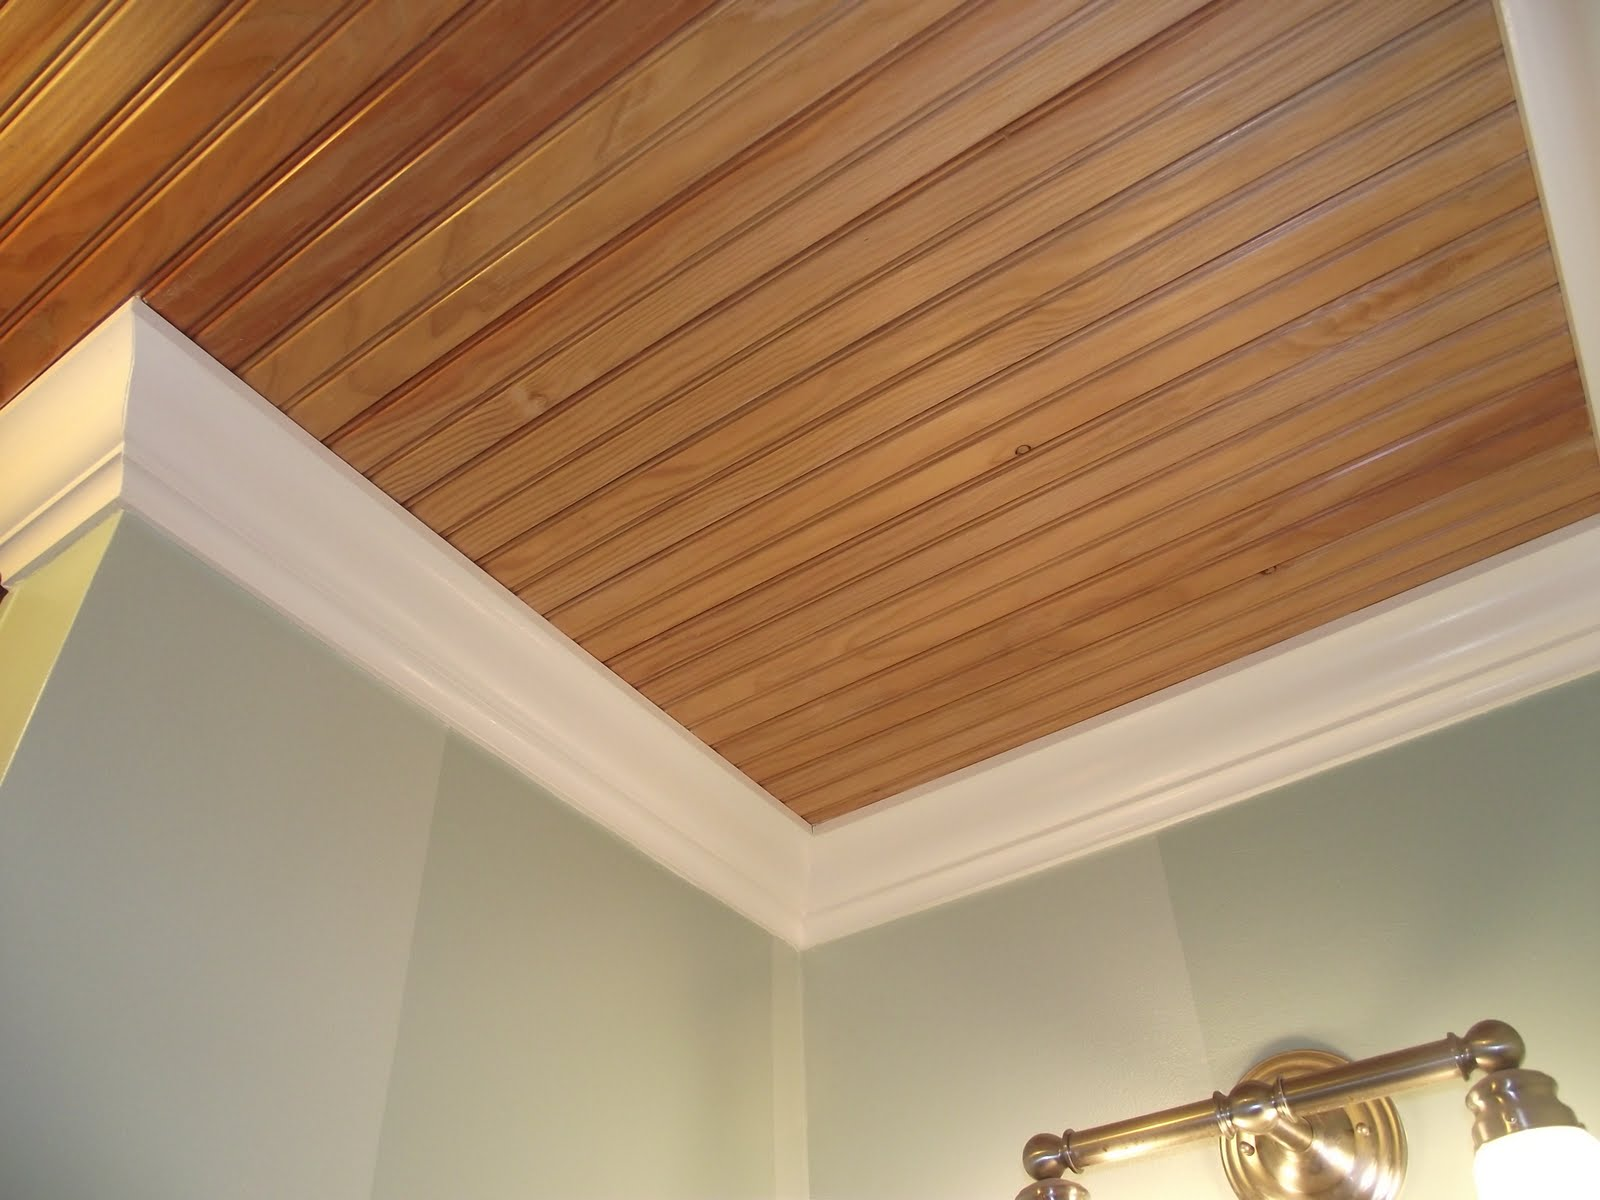 Serendipity chic design putting up a bead board ceiling for Wood floor and ceiling